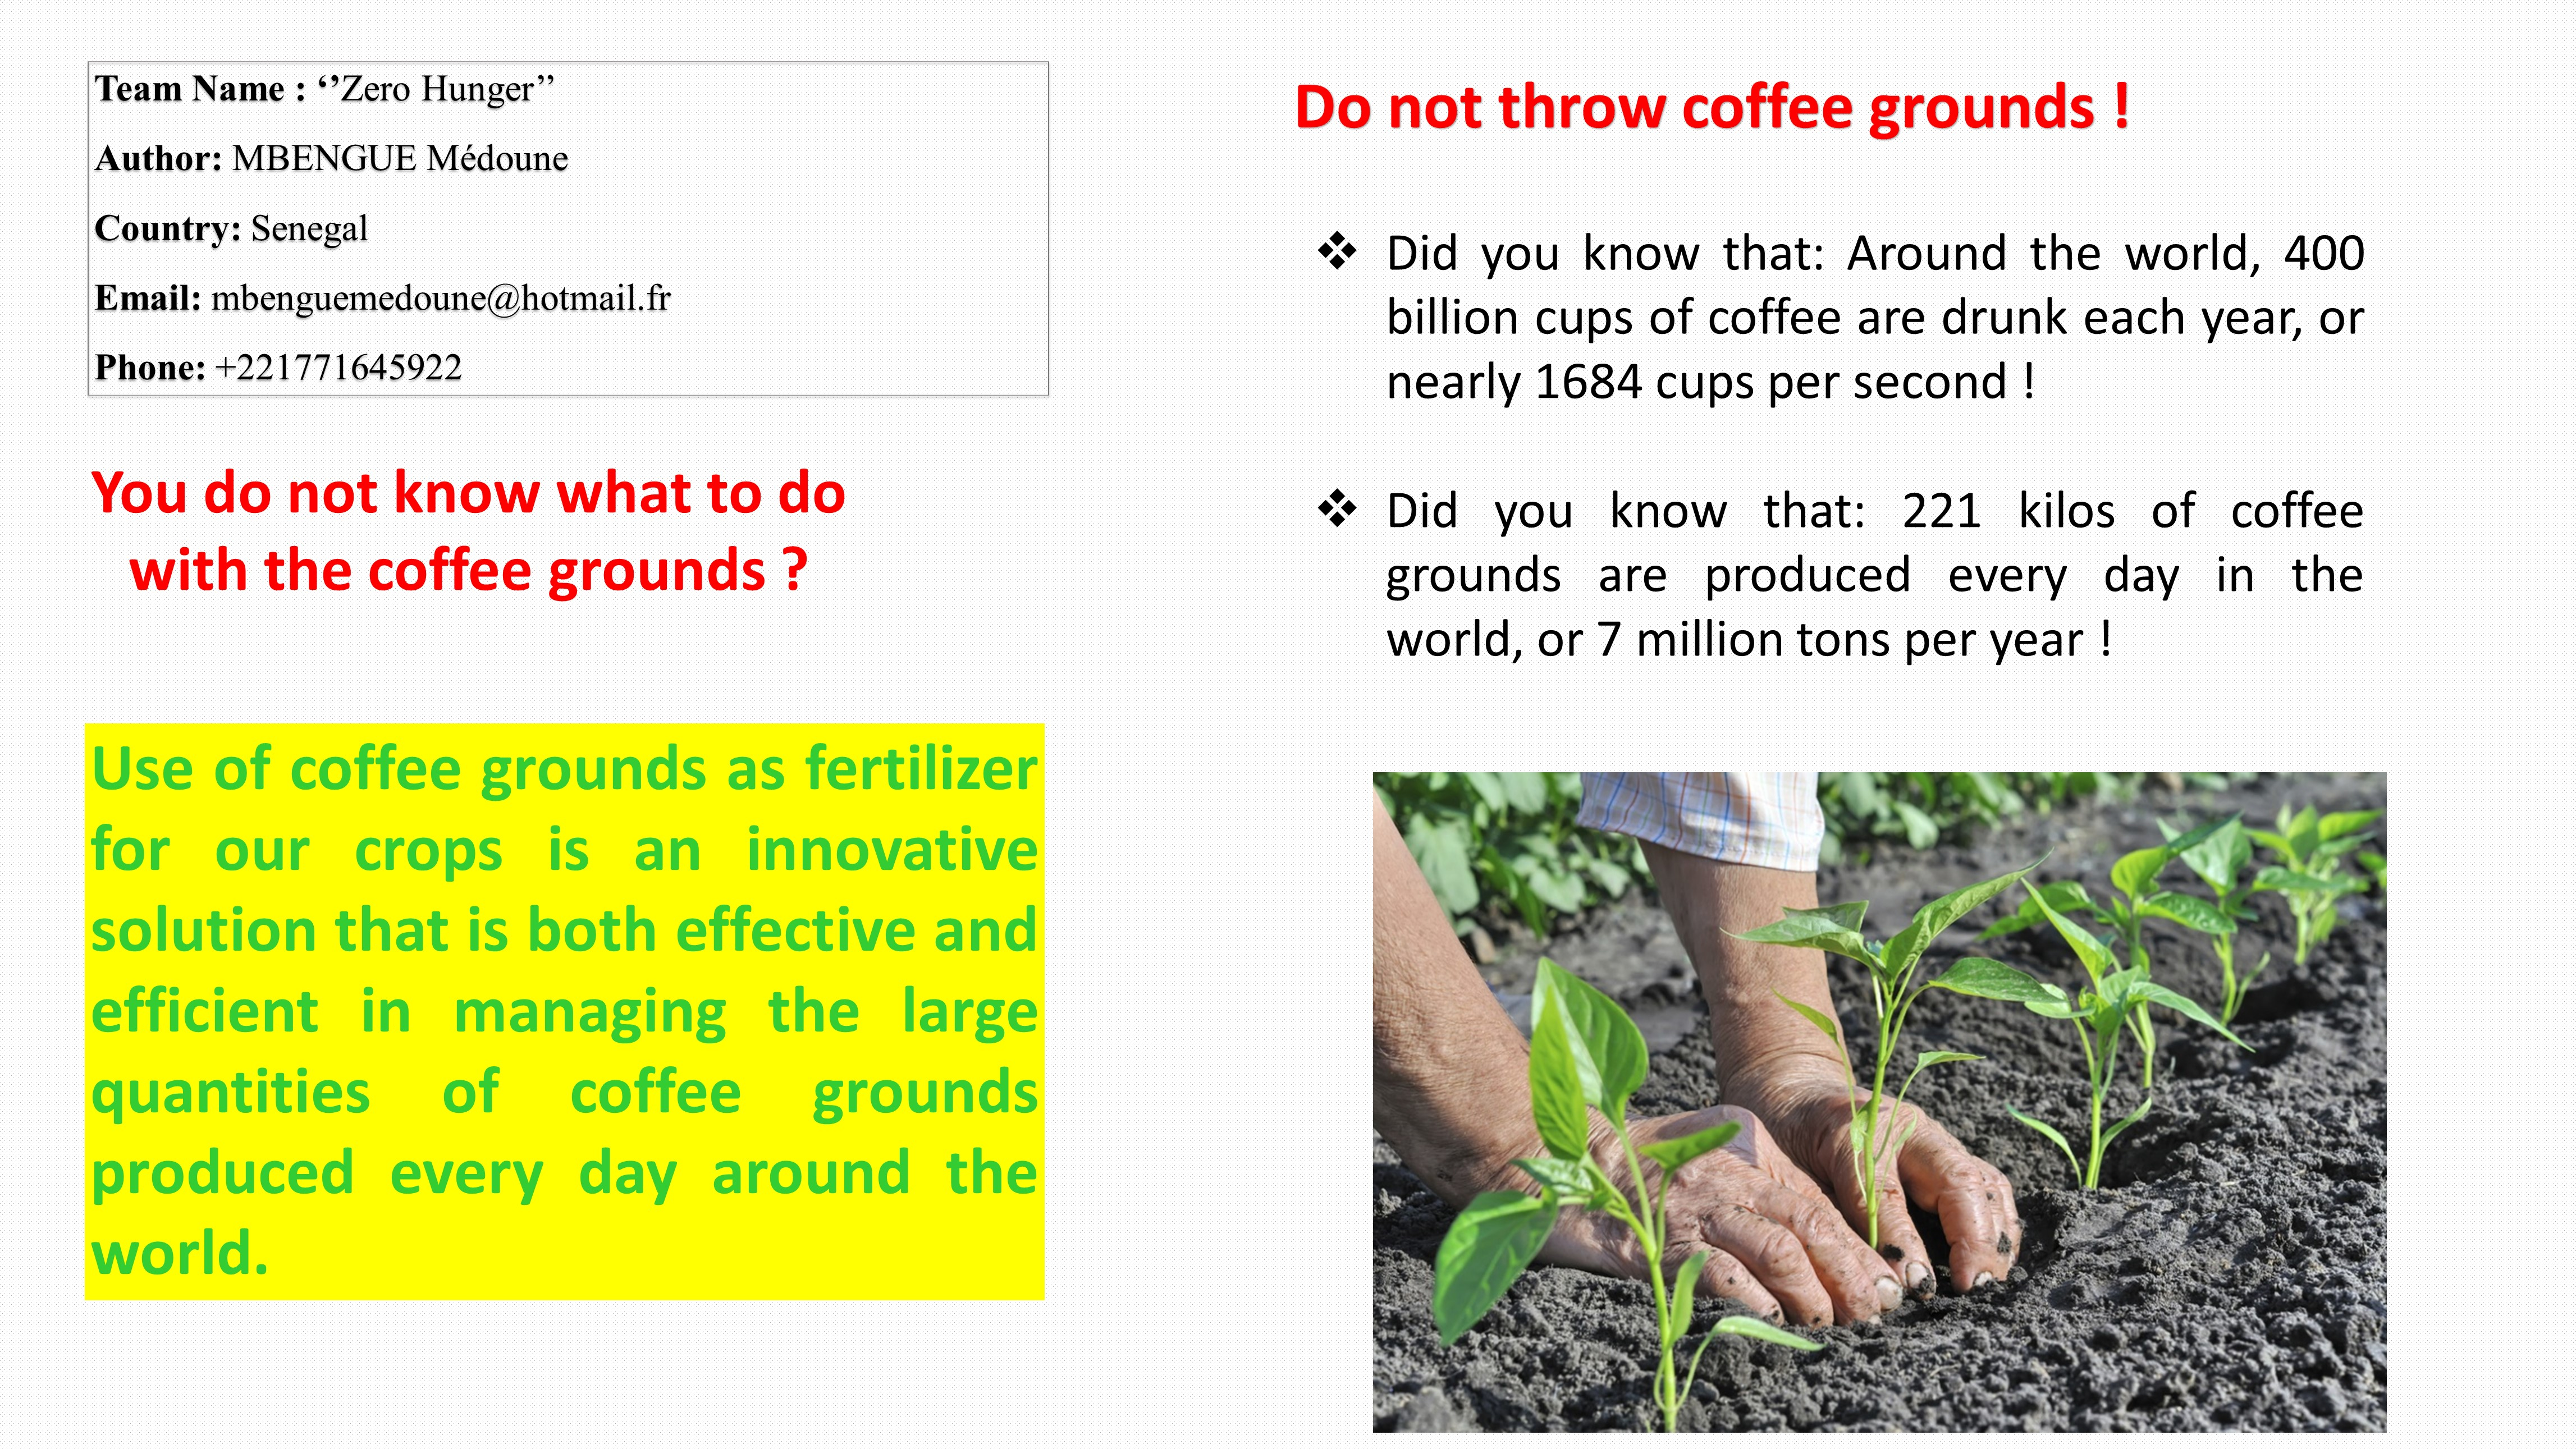 Use of Coffee Grounds as Fertilizer